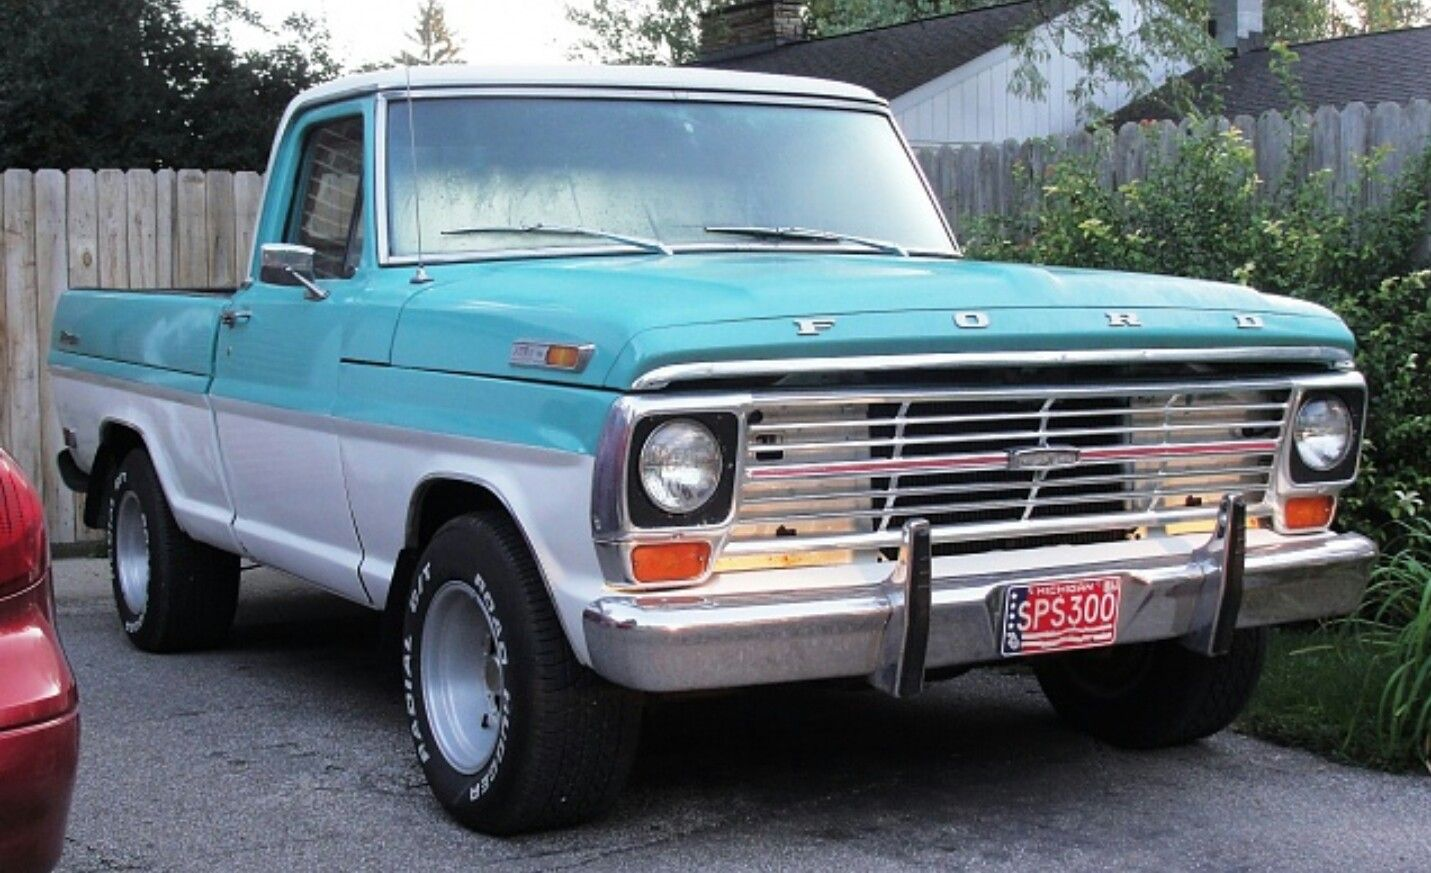 [SCHEMATICS_4UK]  9C32D Details About Ford 1969 F100 F350 Truck Wiring Diagram Manual 69 |  Wiring Library | Details About Ford 1969 F100 F350 Truck Wiring Diagram Manual 69 |  | Wiring Library